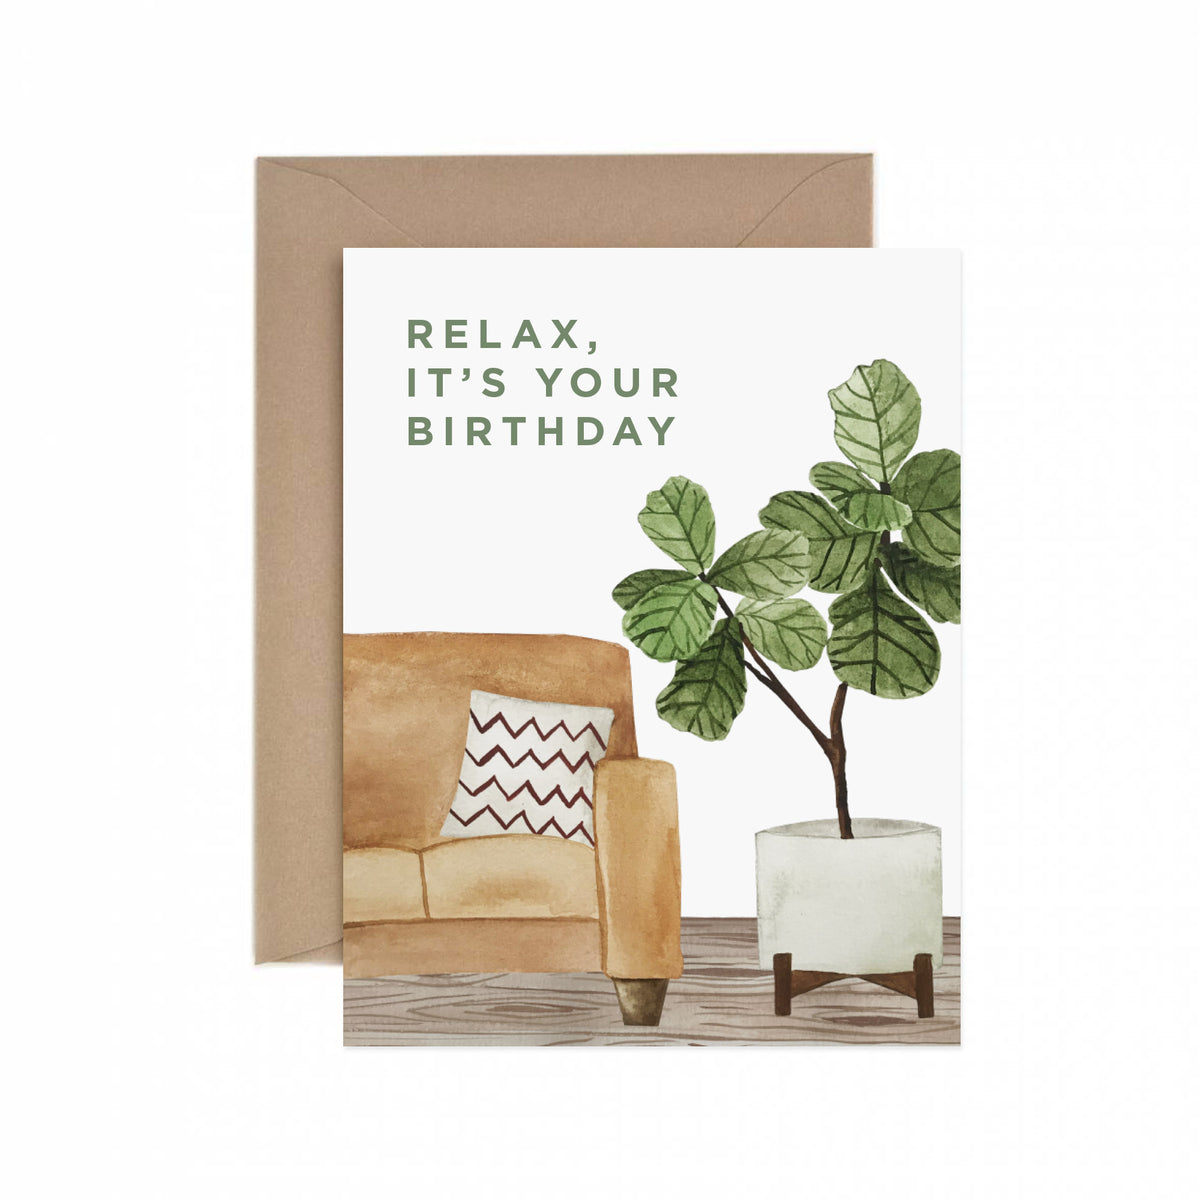 Relax, It's Your Birthday Greeting Card